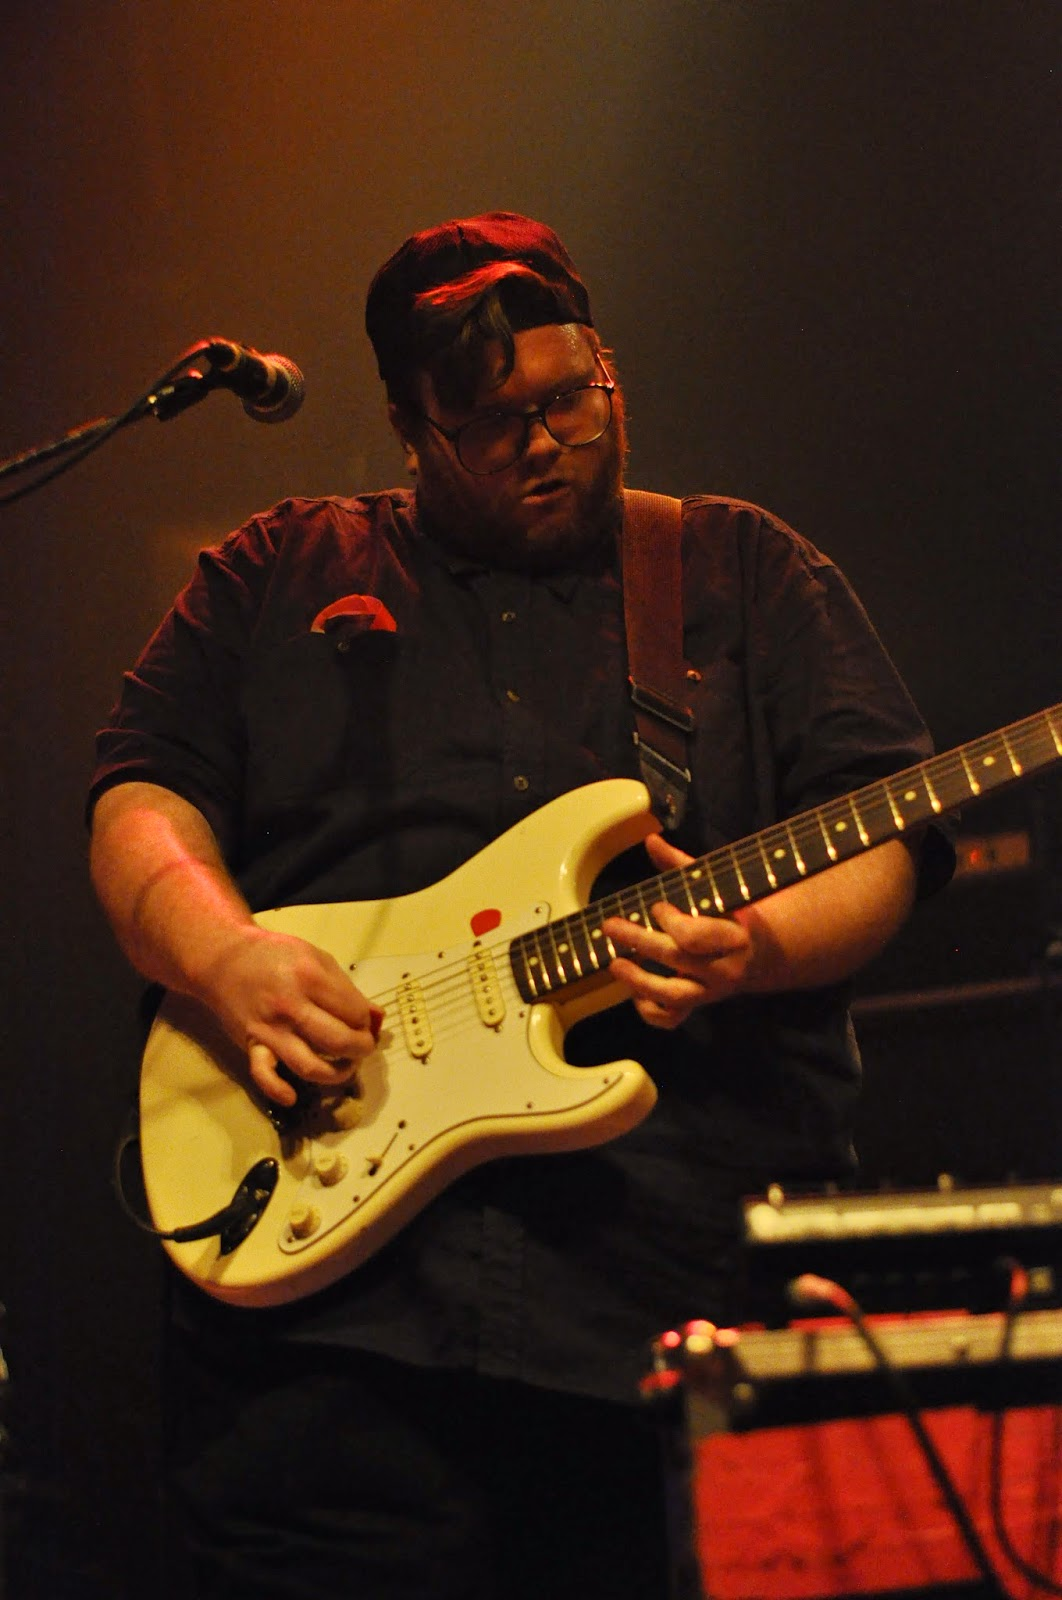 Paul Saulnier is the guitarist for PS I Love You.